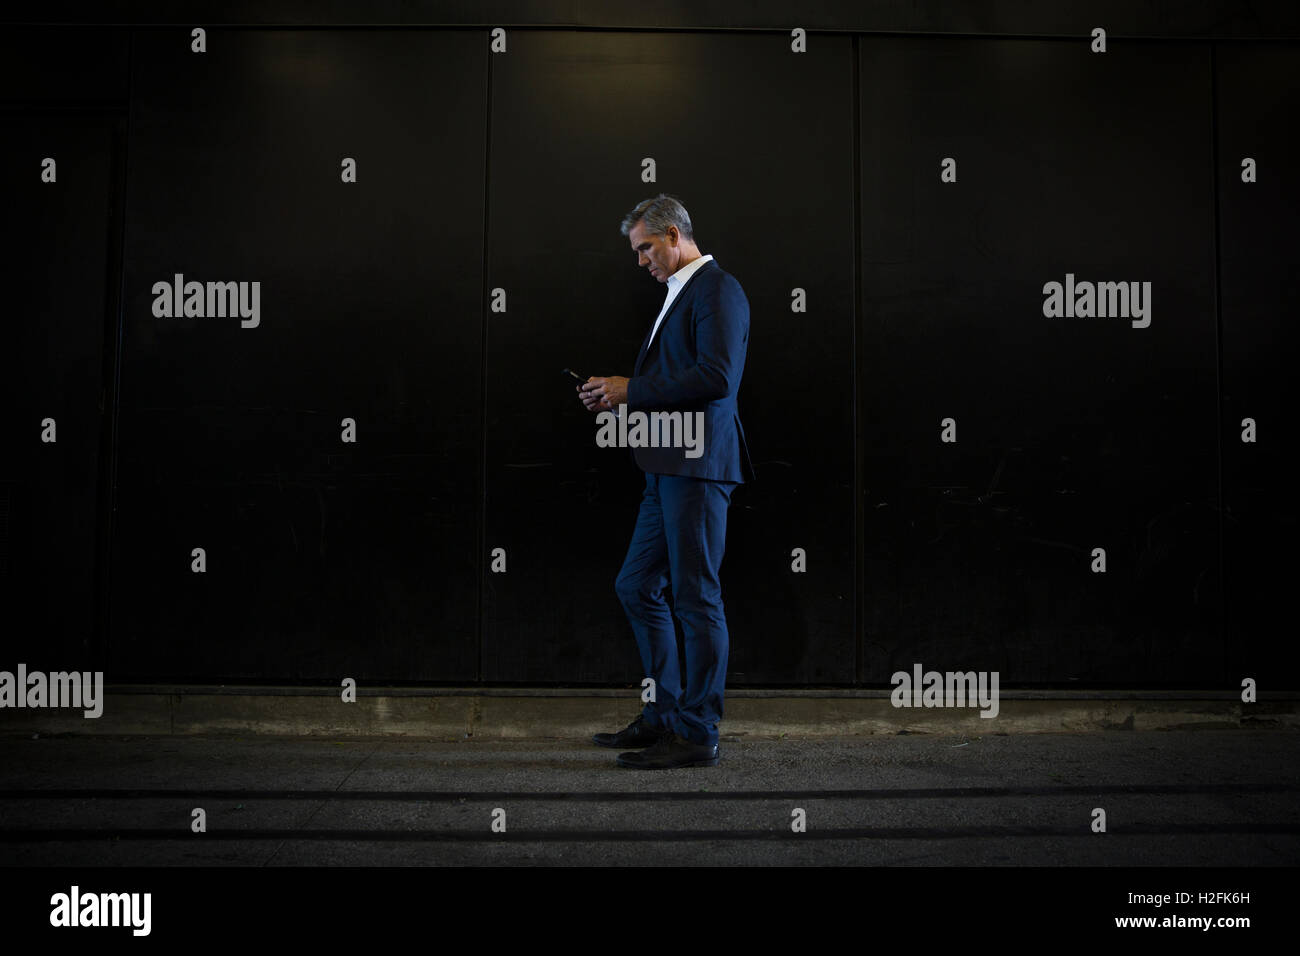 A man in a suit standing in shadow on  a city street, looking at his smart phone, texting - Stock Image